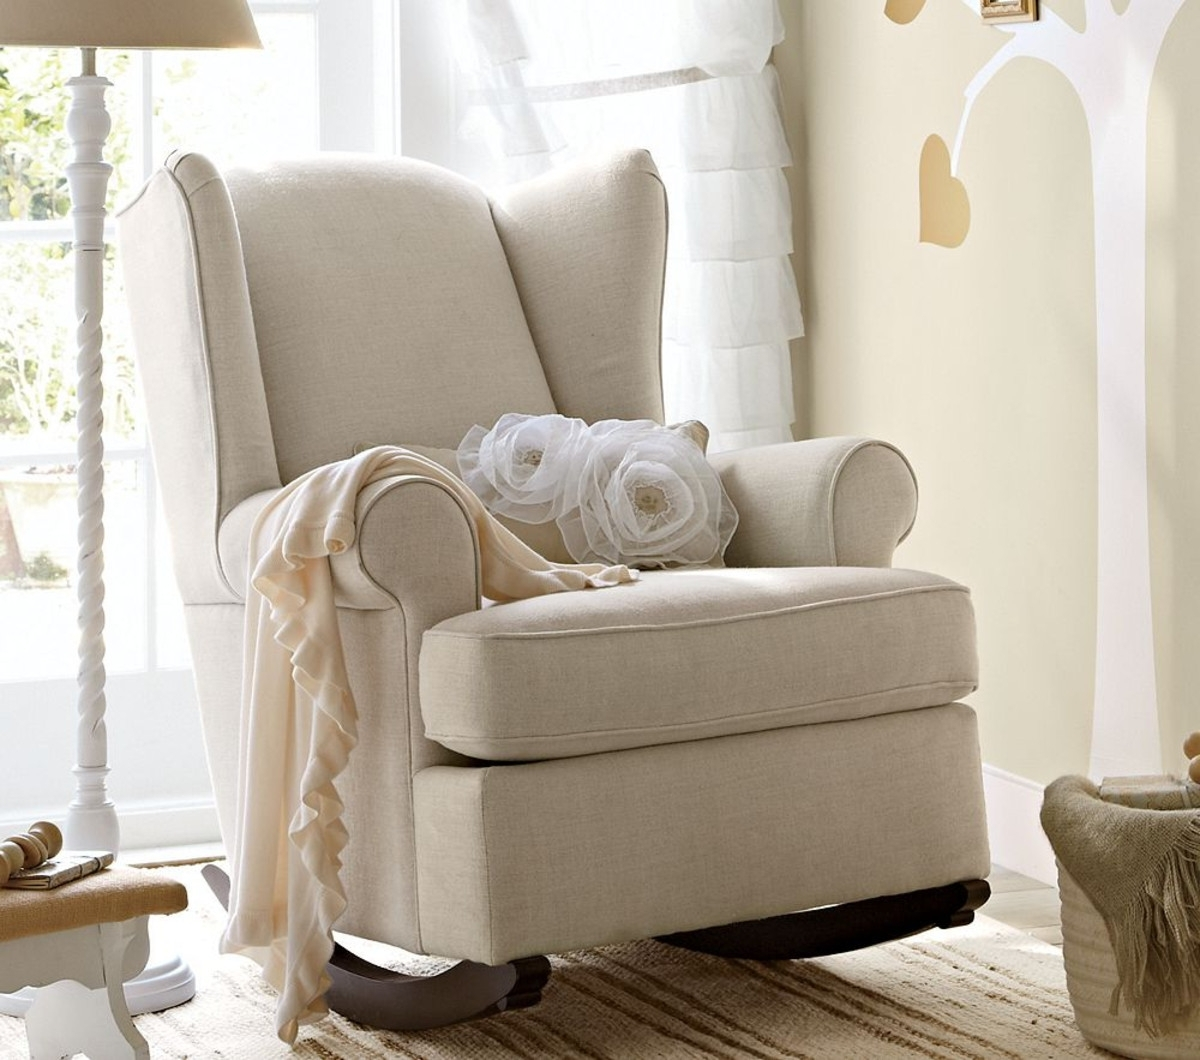 2017 Rocking Chairs For Nursing Throughout Ottomans : Cheap Rocking Chairs For Nursery Gray Glider Baby (View 2 of 15)